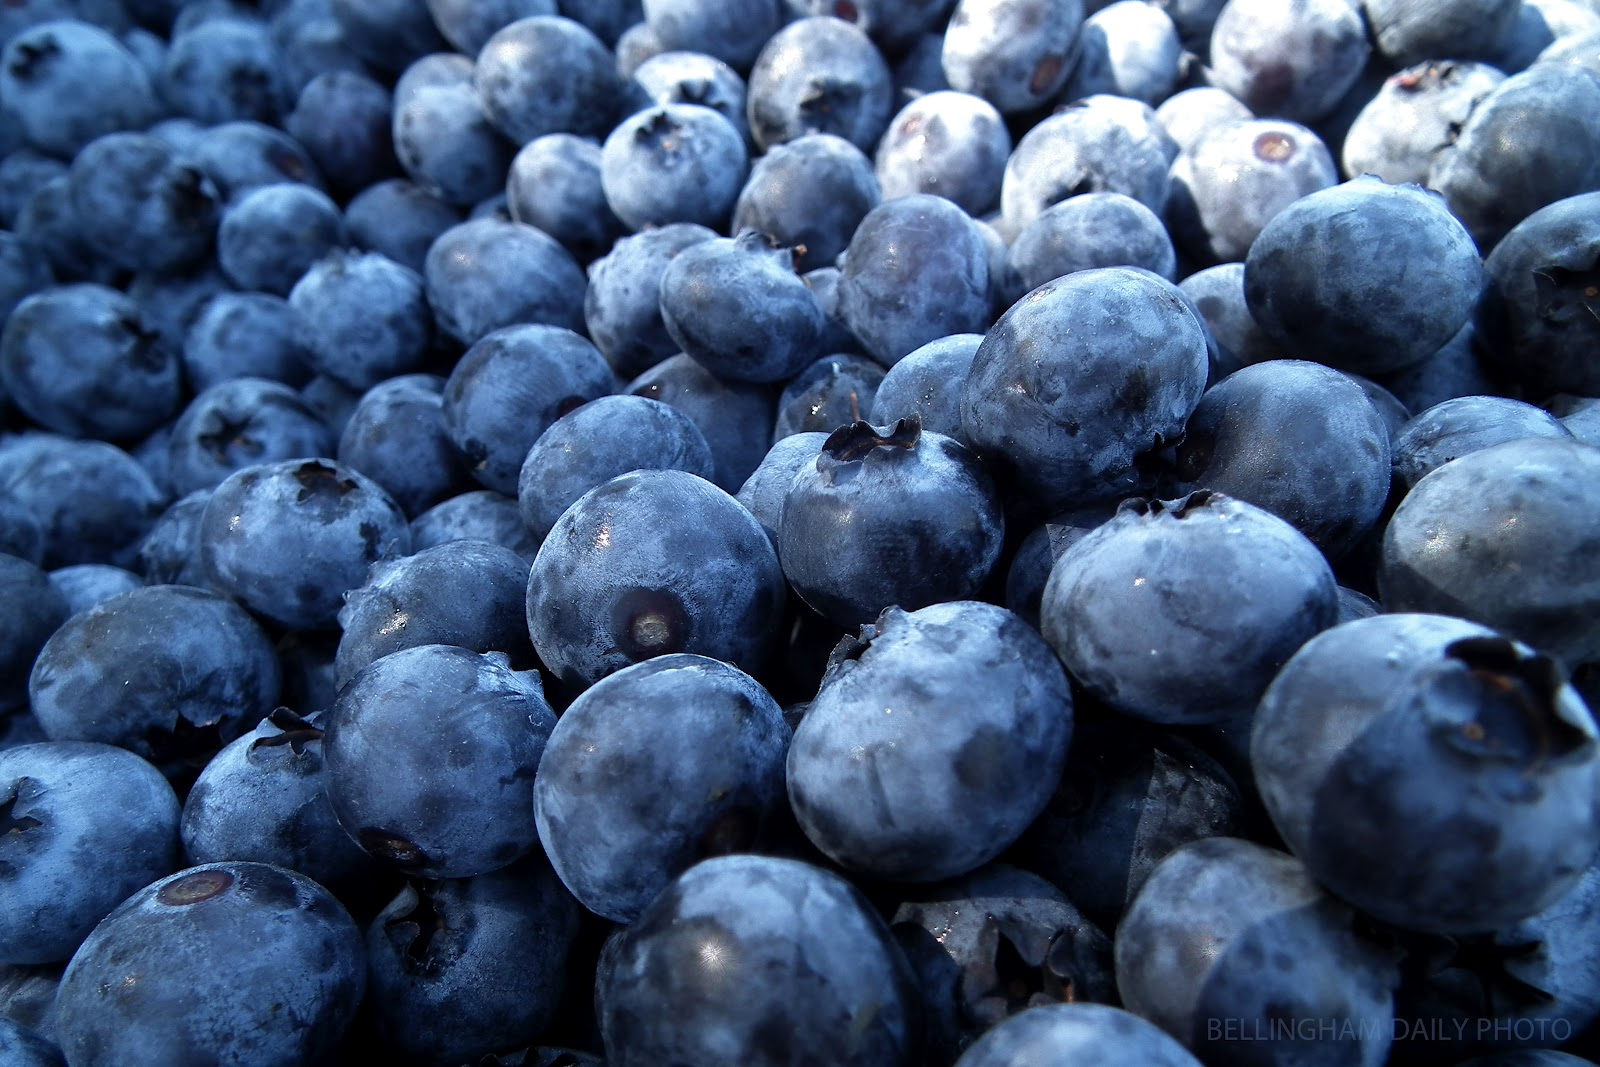 Quantity 520 grams energy 224 calories carbs 50 grams blueberries